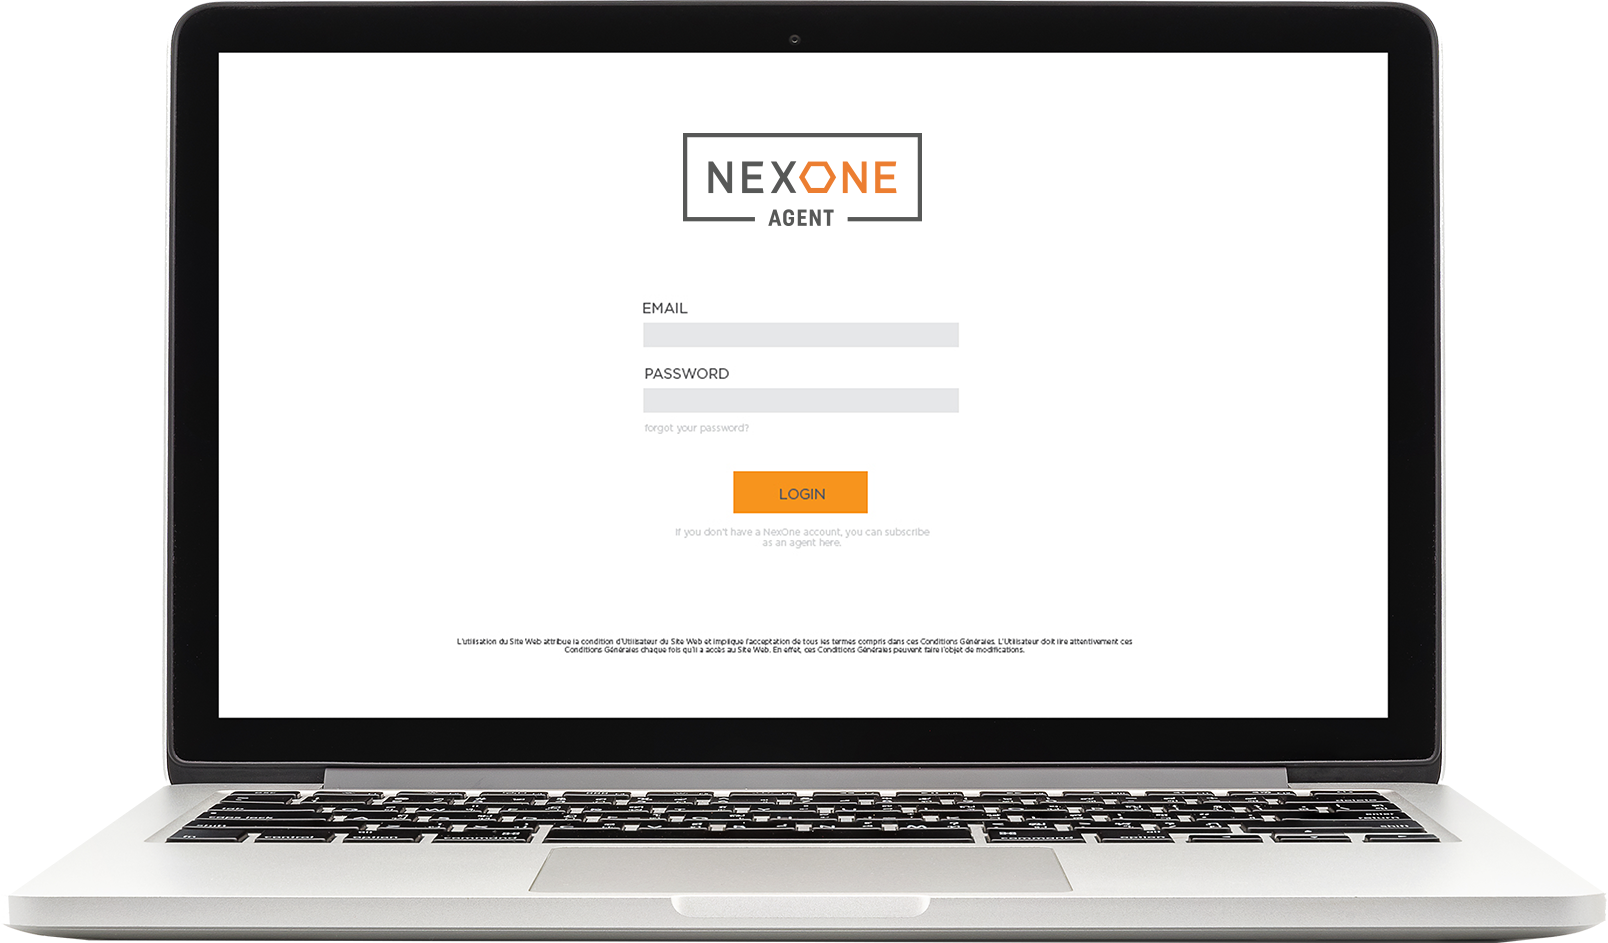 nexone_agent_computerpng